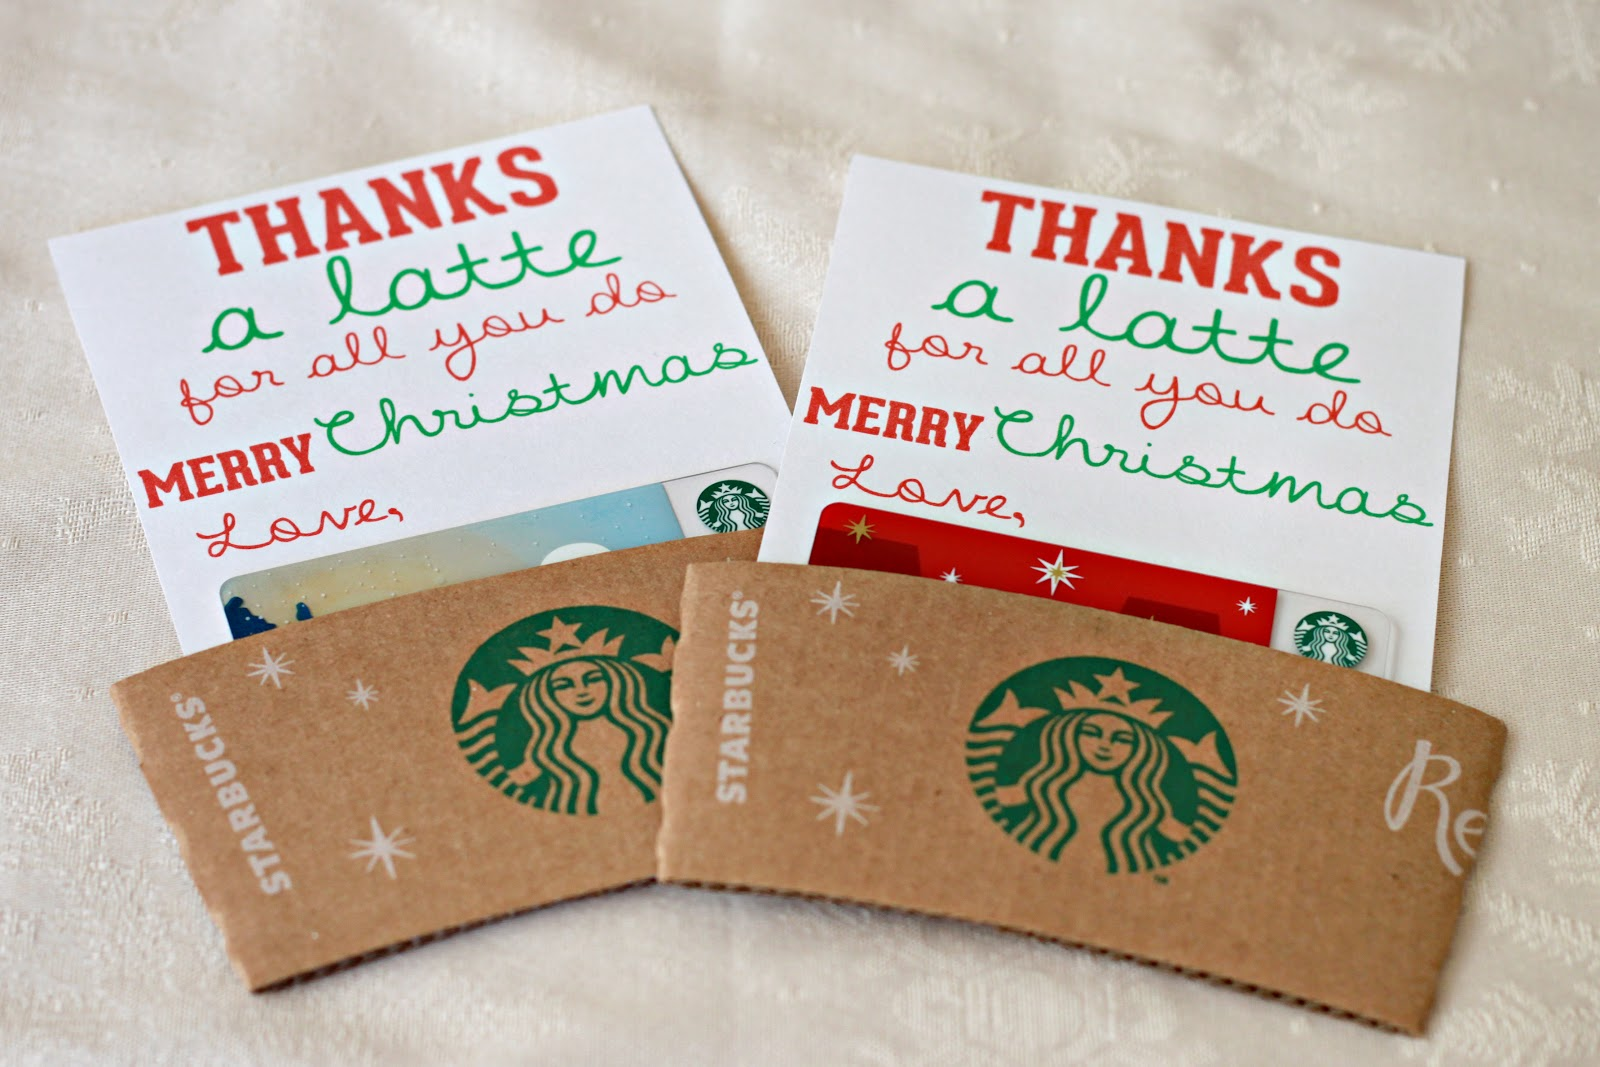 starbucks gift card balance photo - 1